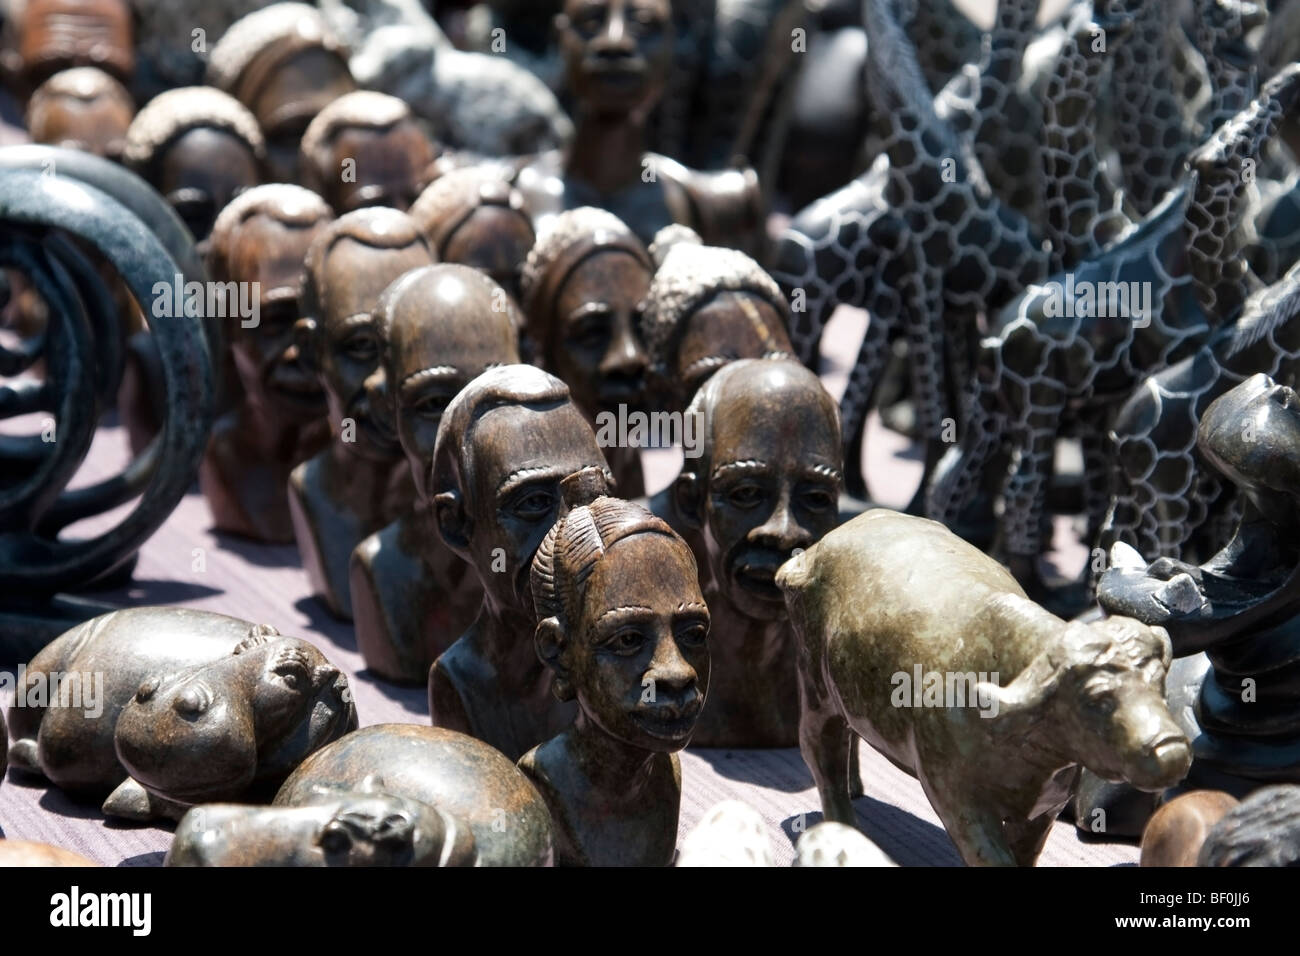 Stone and wooden curios for sale in South Africa - Stock Image